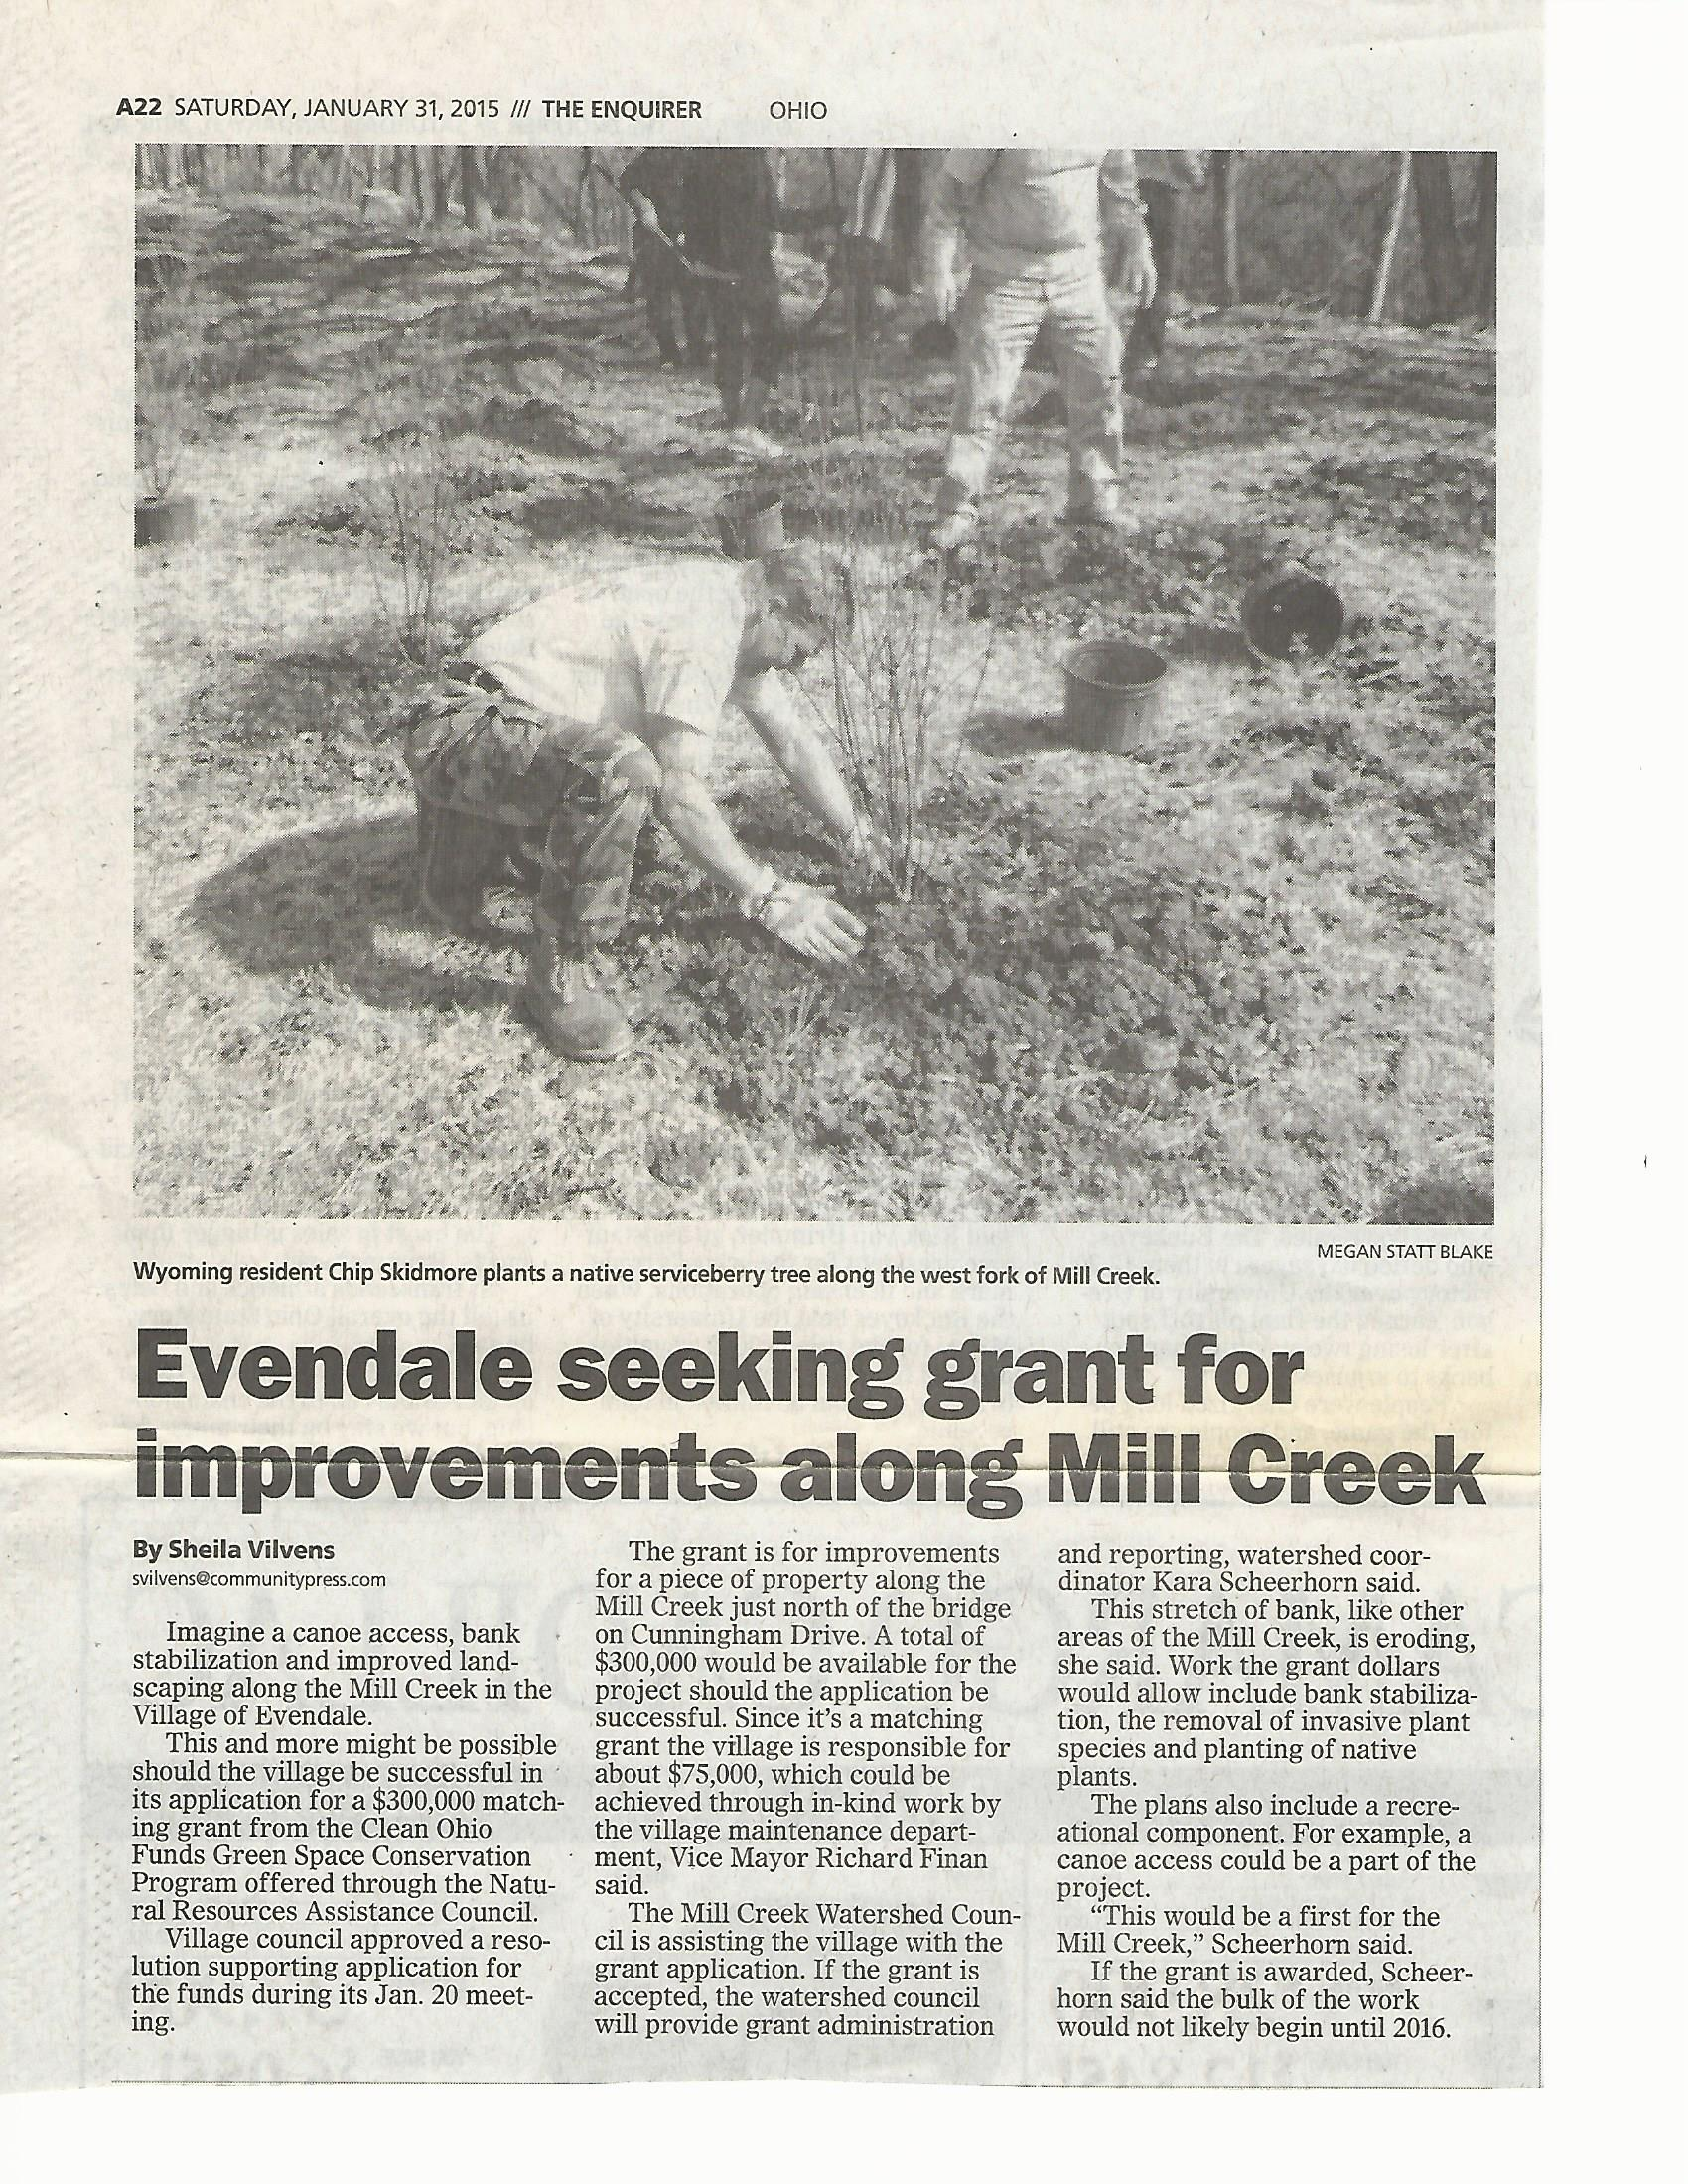 Cincinnati Enquirer_Evendale seeking grant_07.31.15.jpg